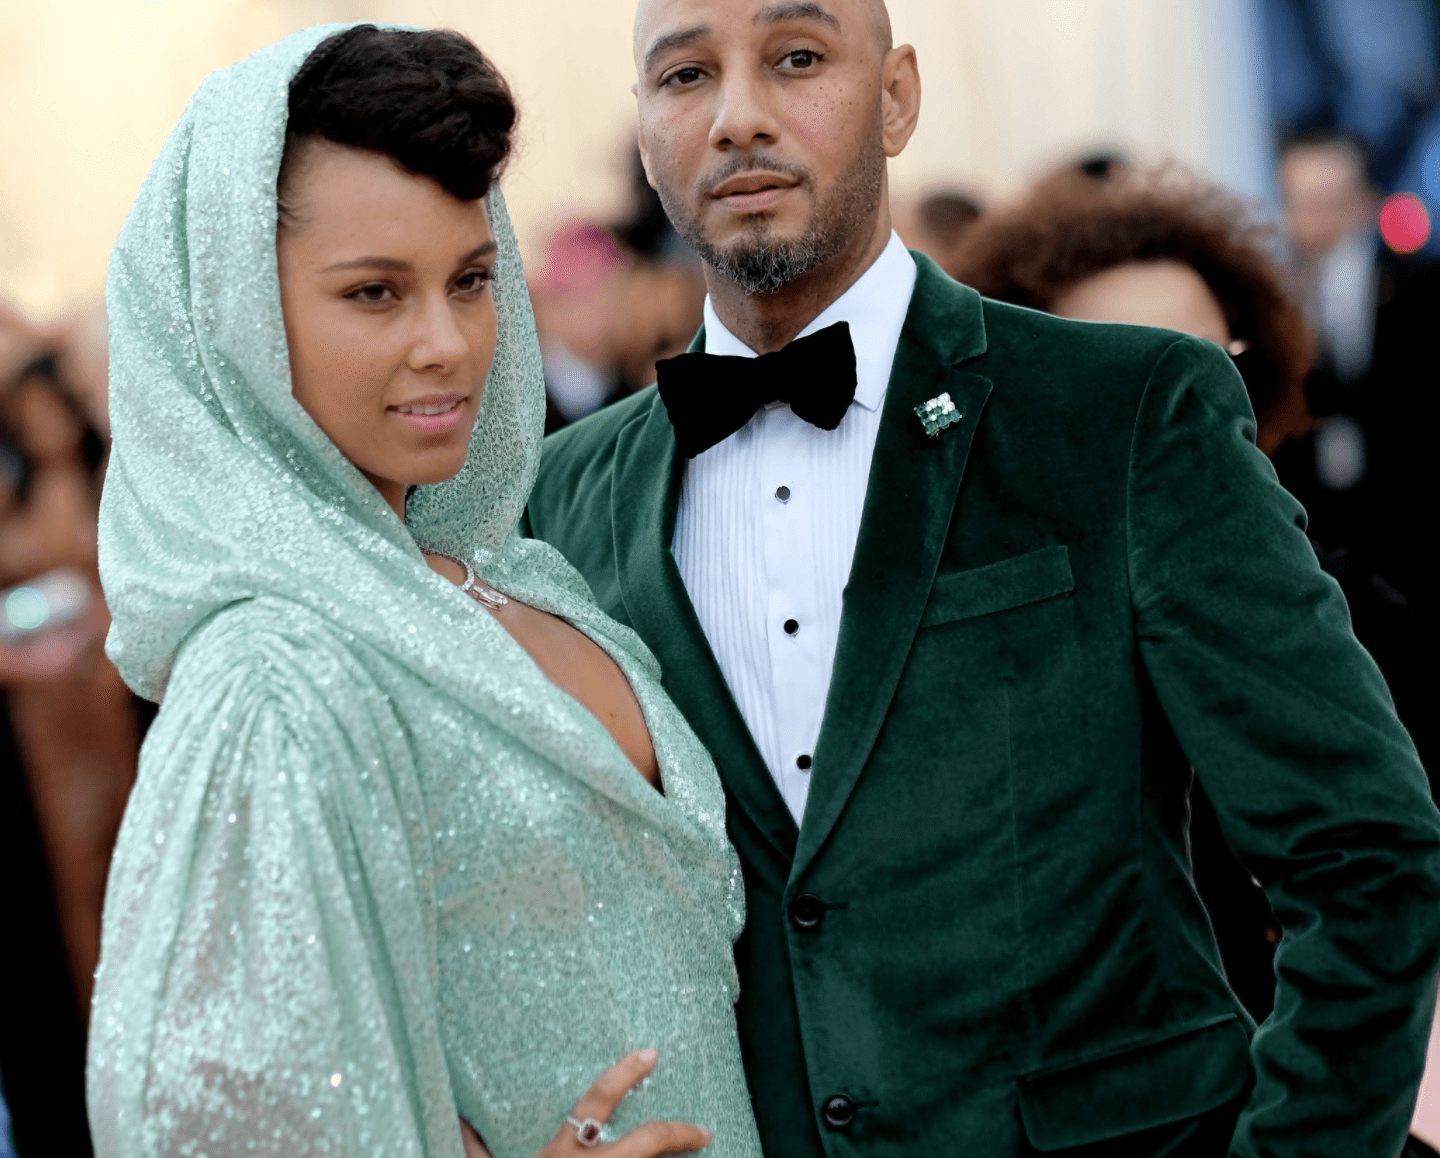 Alicia Keys and Swizz Beatz at the 2019 Met Gala at the Metropolitan Museum of Art in 2019. | Source: Getty Images